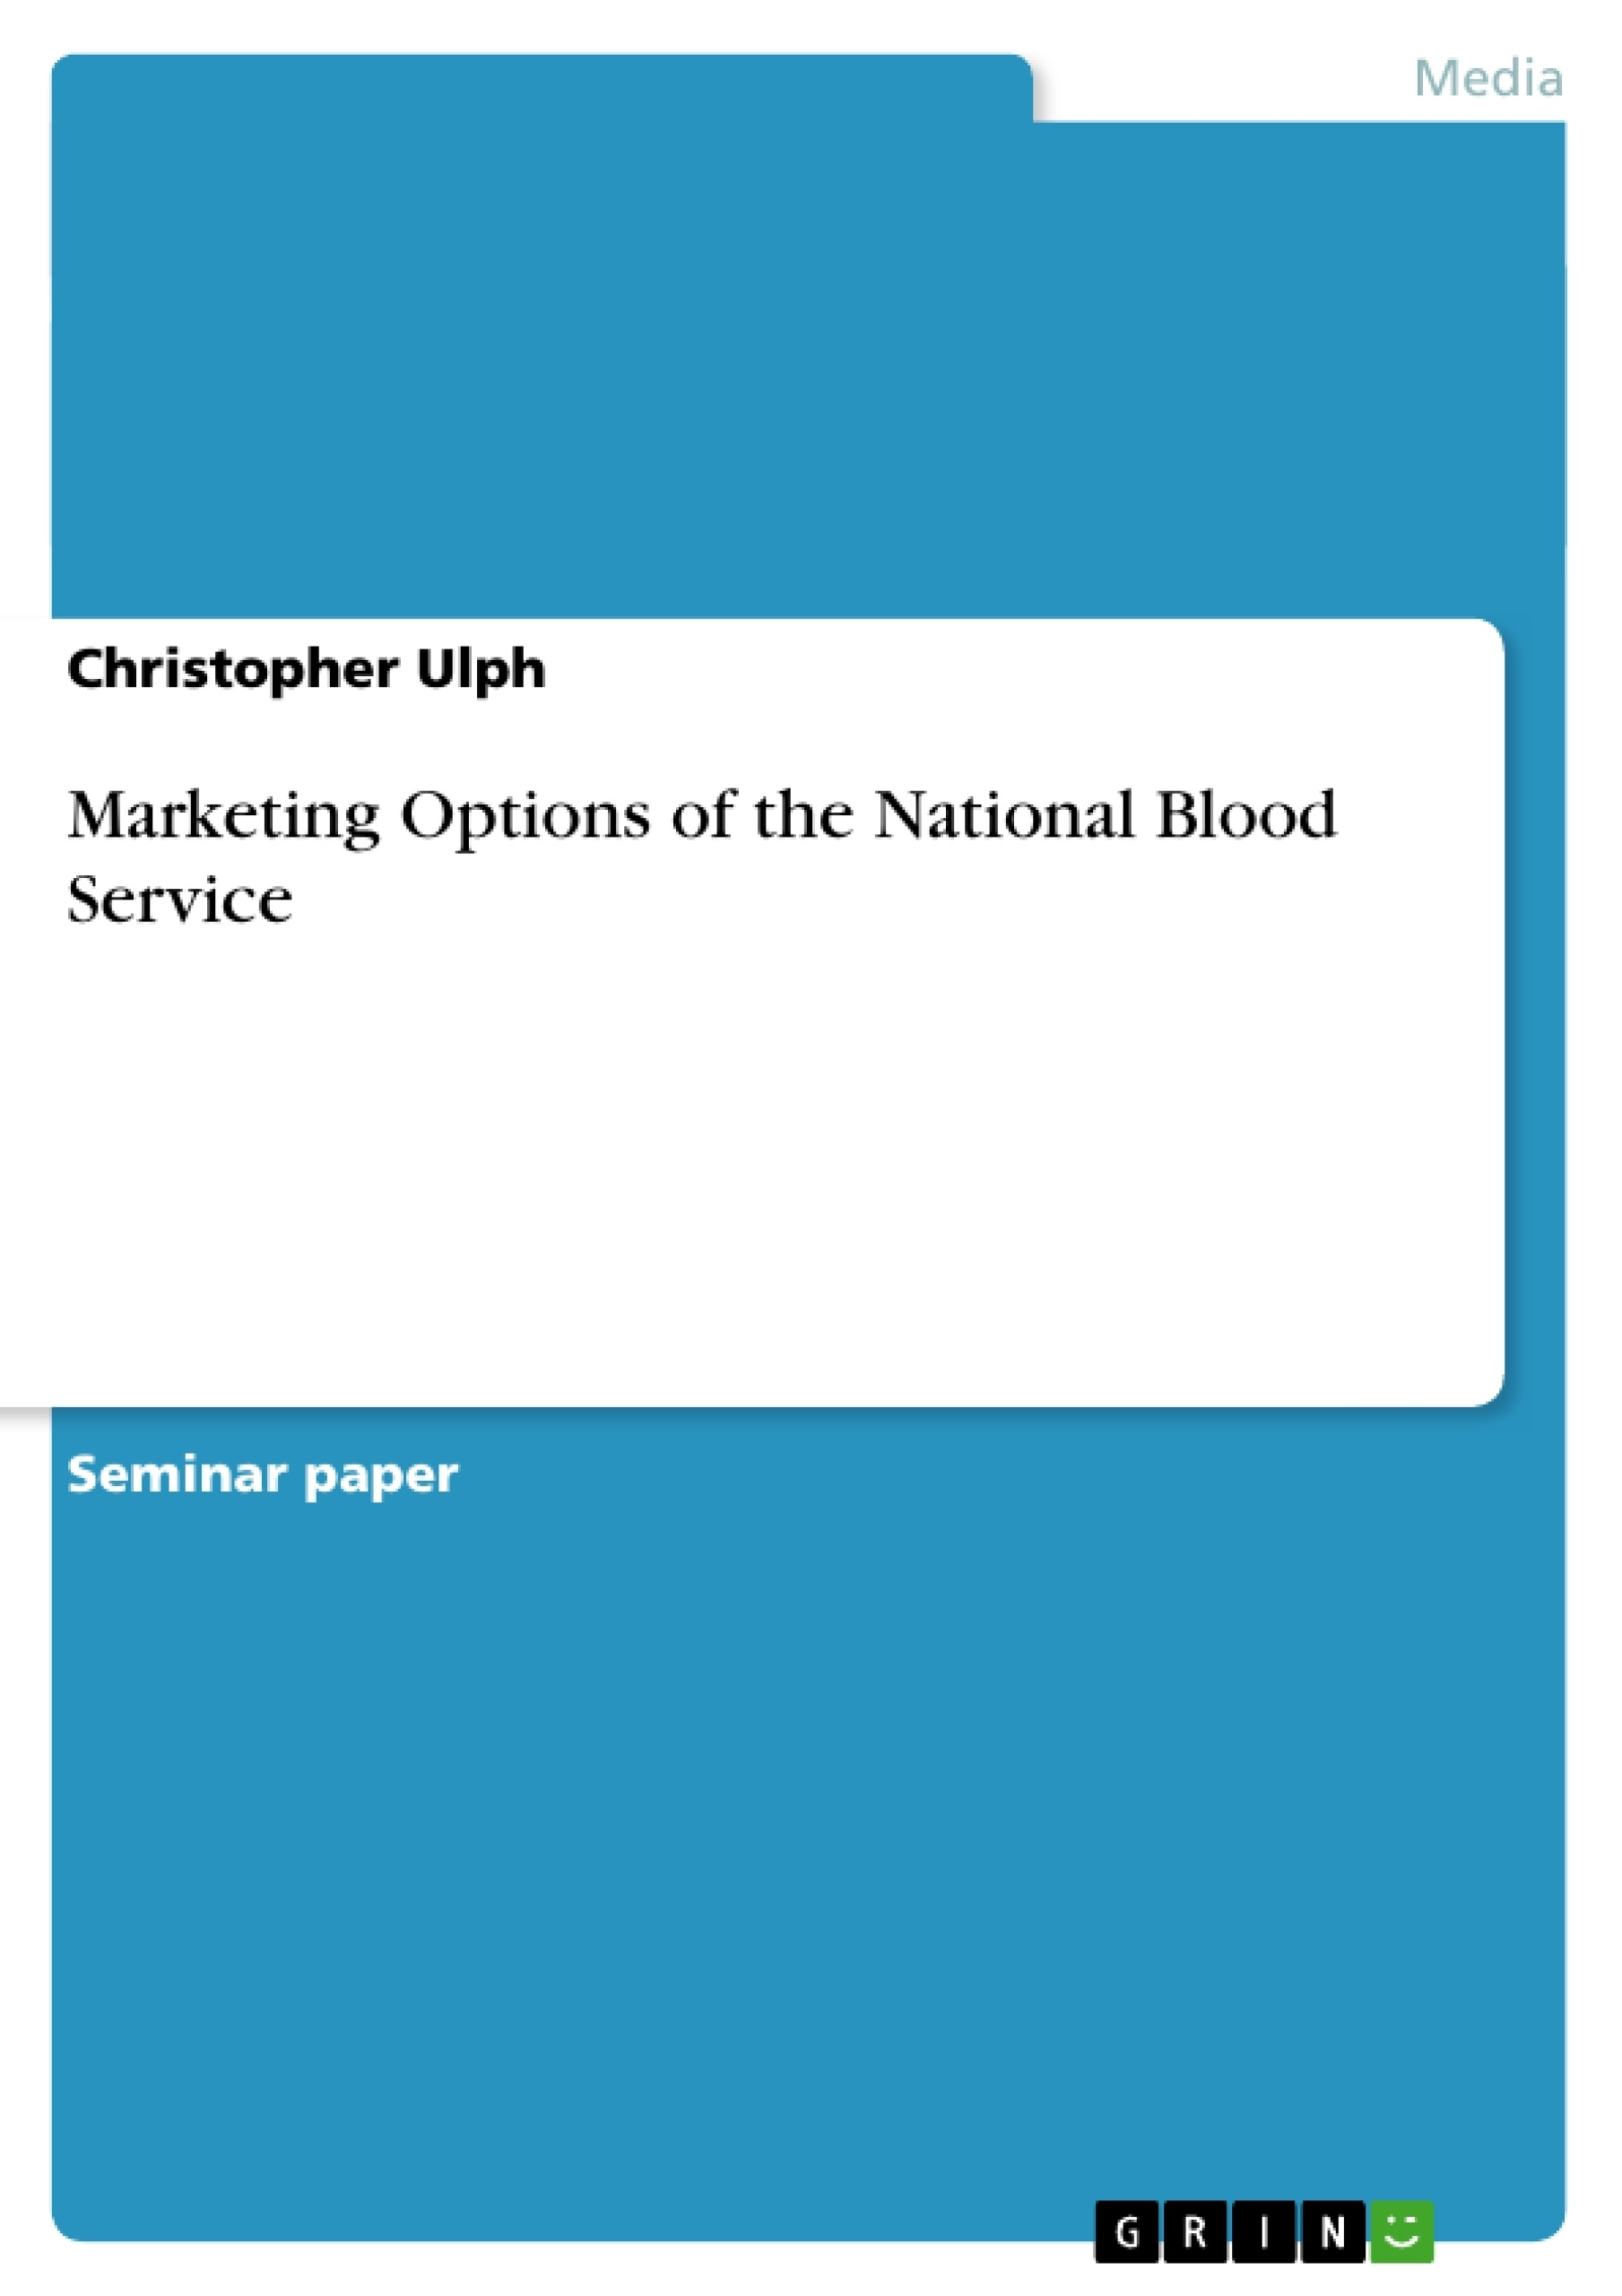 Title: Marketing Options of the National Blood Service